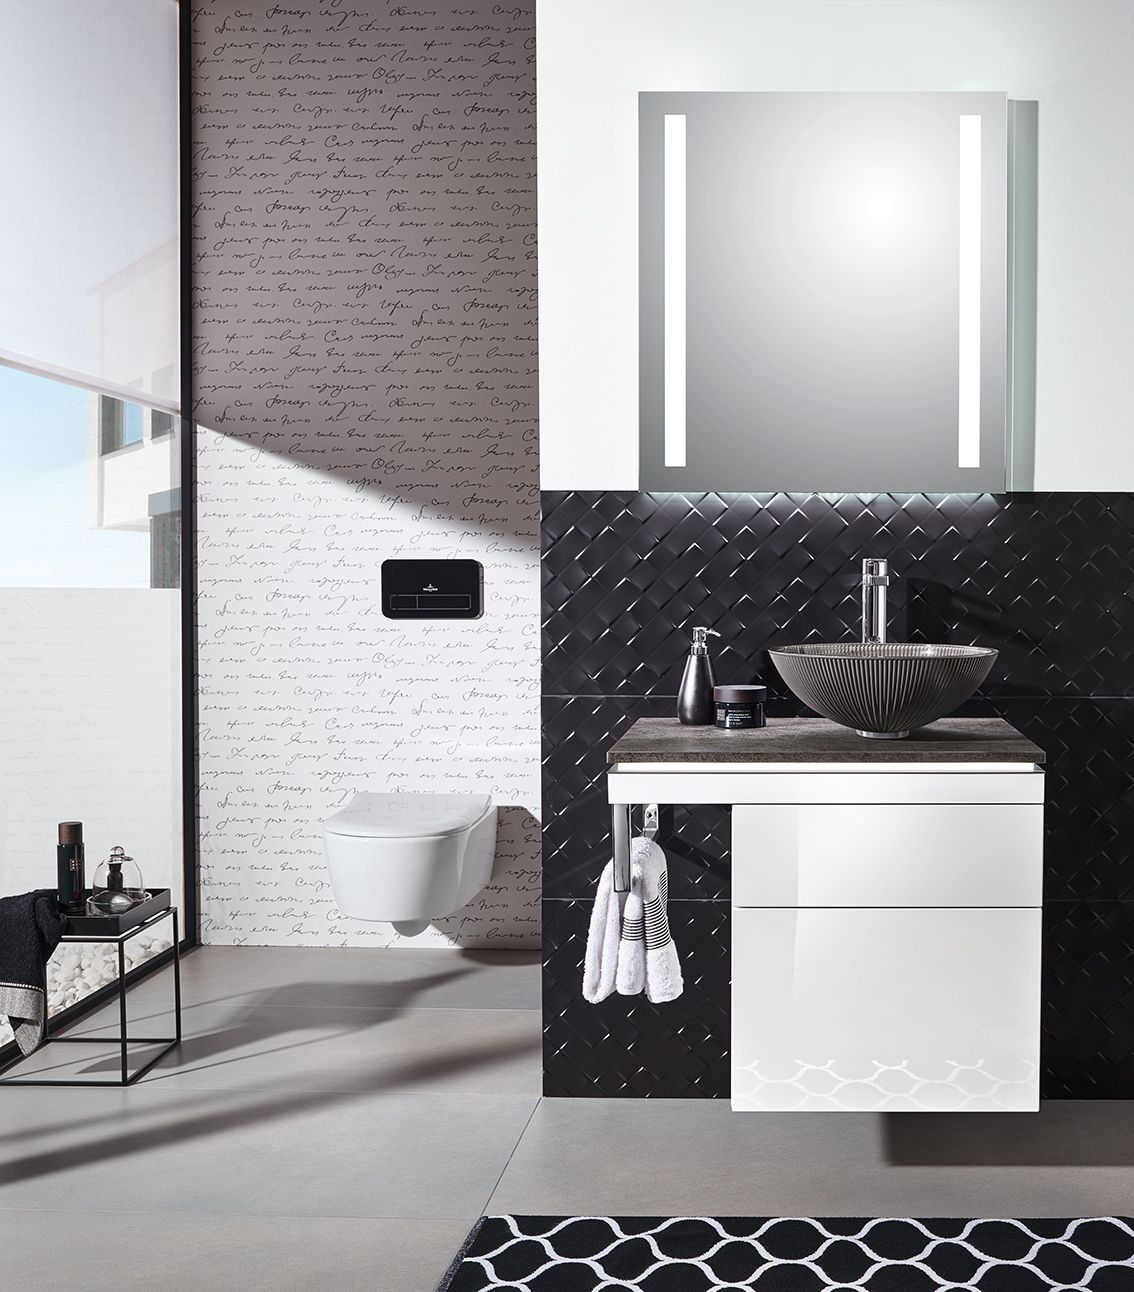 so viel kostet dein traumbad wow badezimmer bad badezimmer und g ste wc. Black Bedroom Furniture Sets. Home Design Ideas